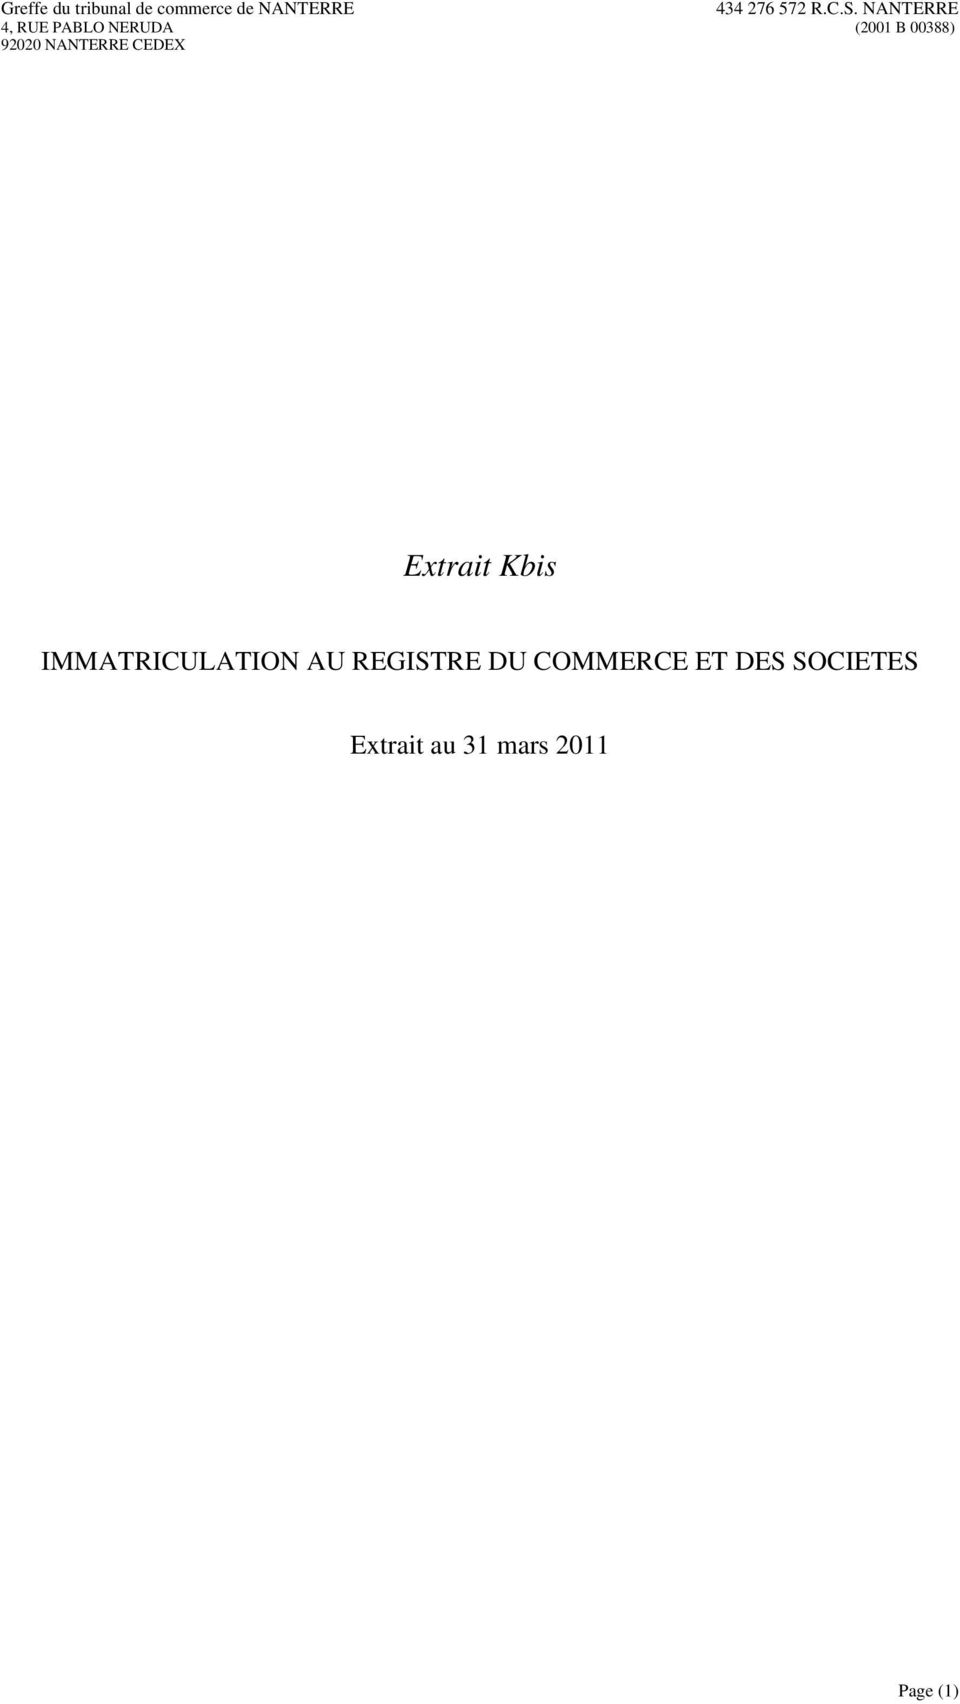 REGISTRE DU COMMERCE ET